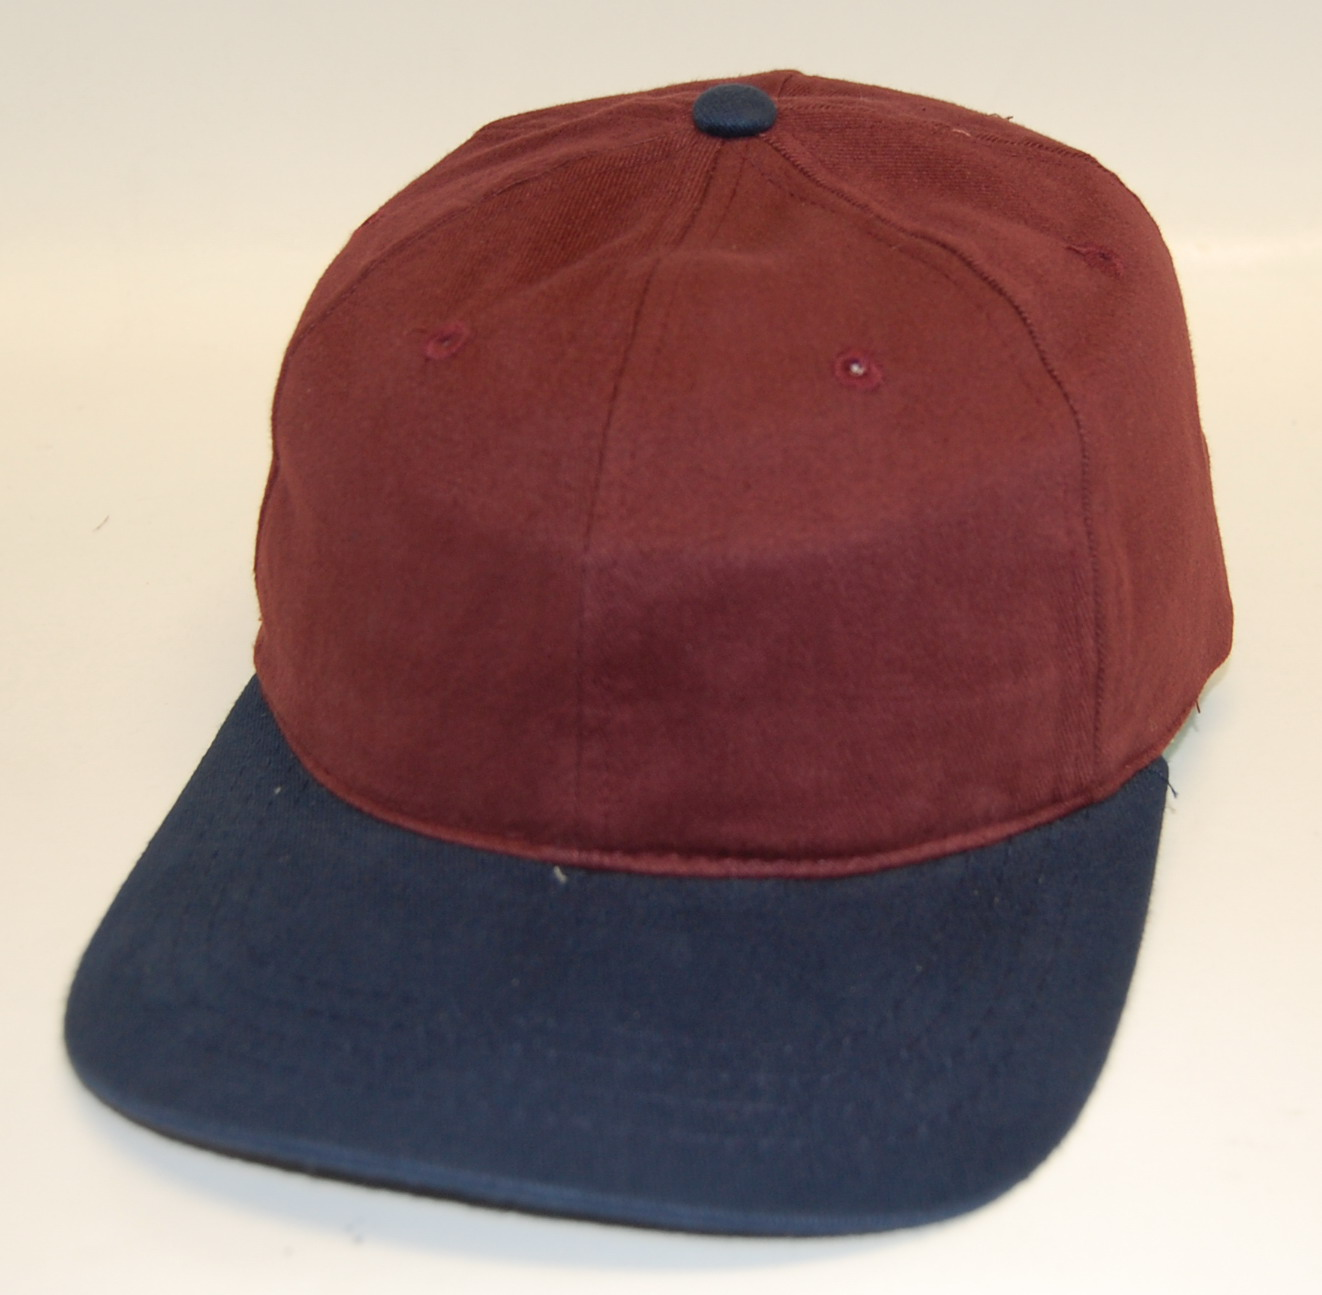 CO290 Burgundy Navy